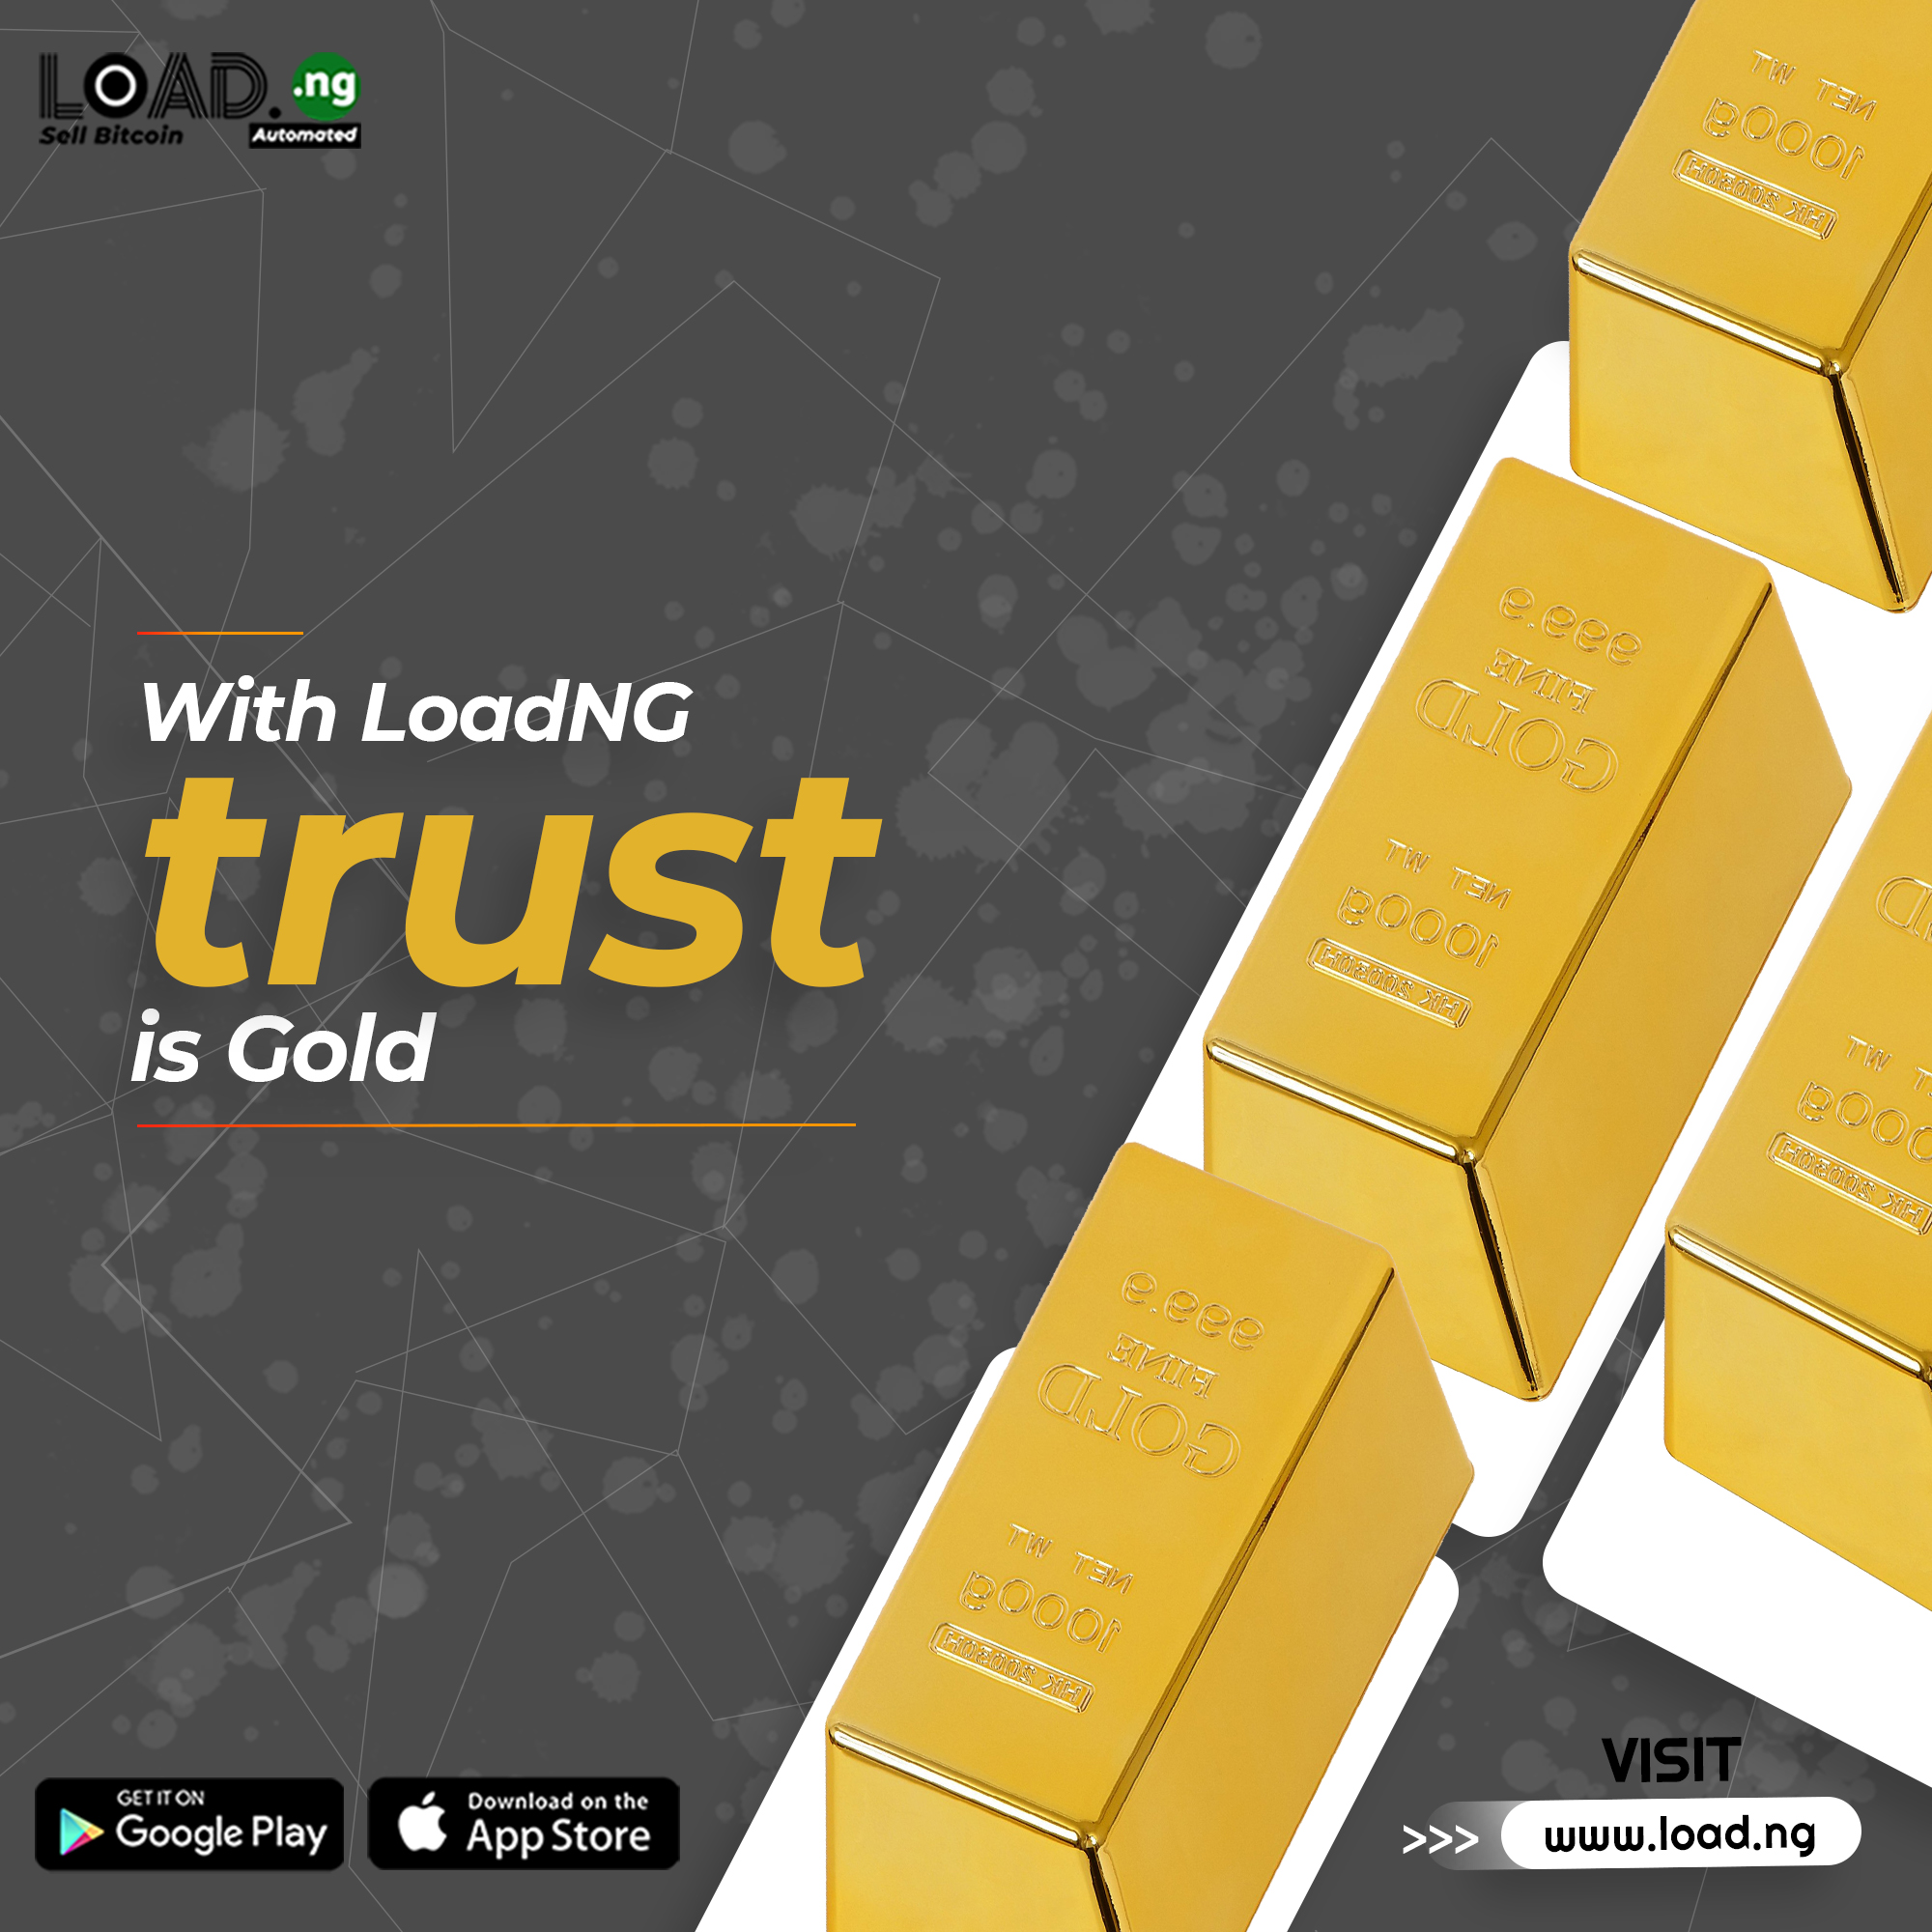 Firm Launches Innovative E-Commerce Service To Solve Bitcoin To Cash Buying Related Issues In Nigeria:LoadNG